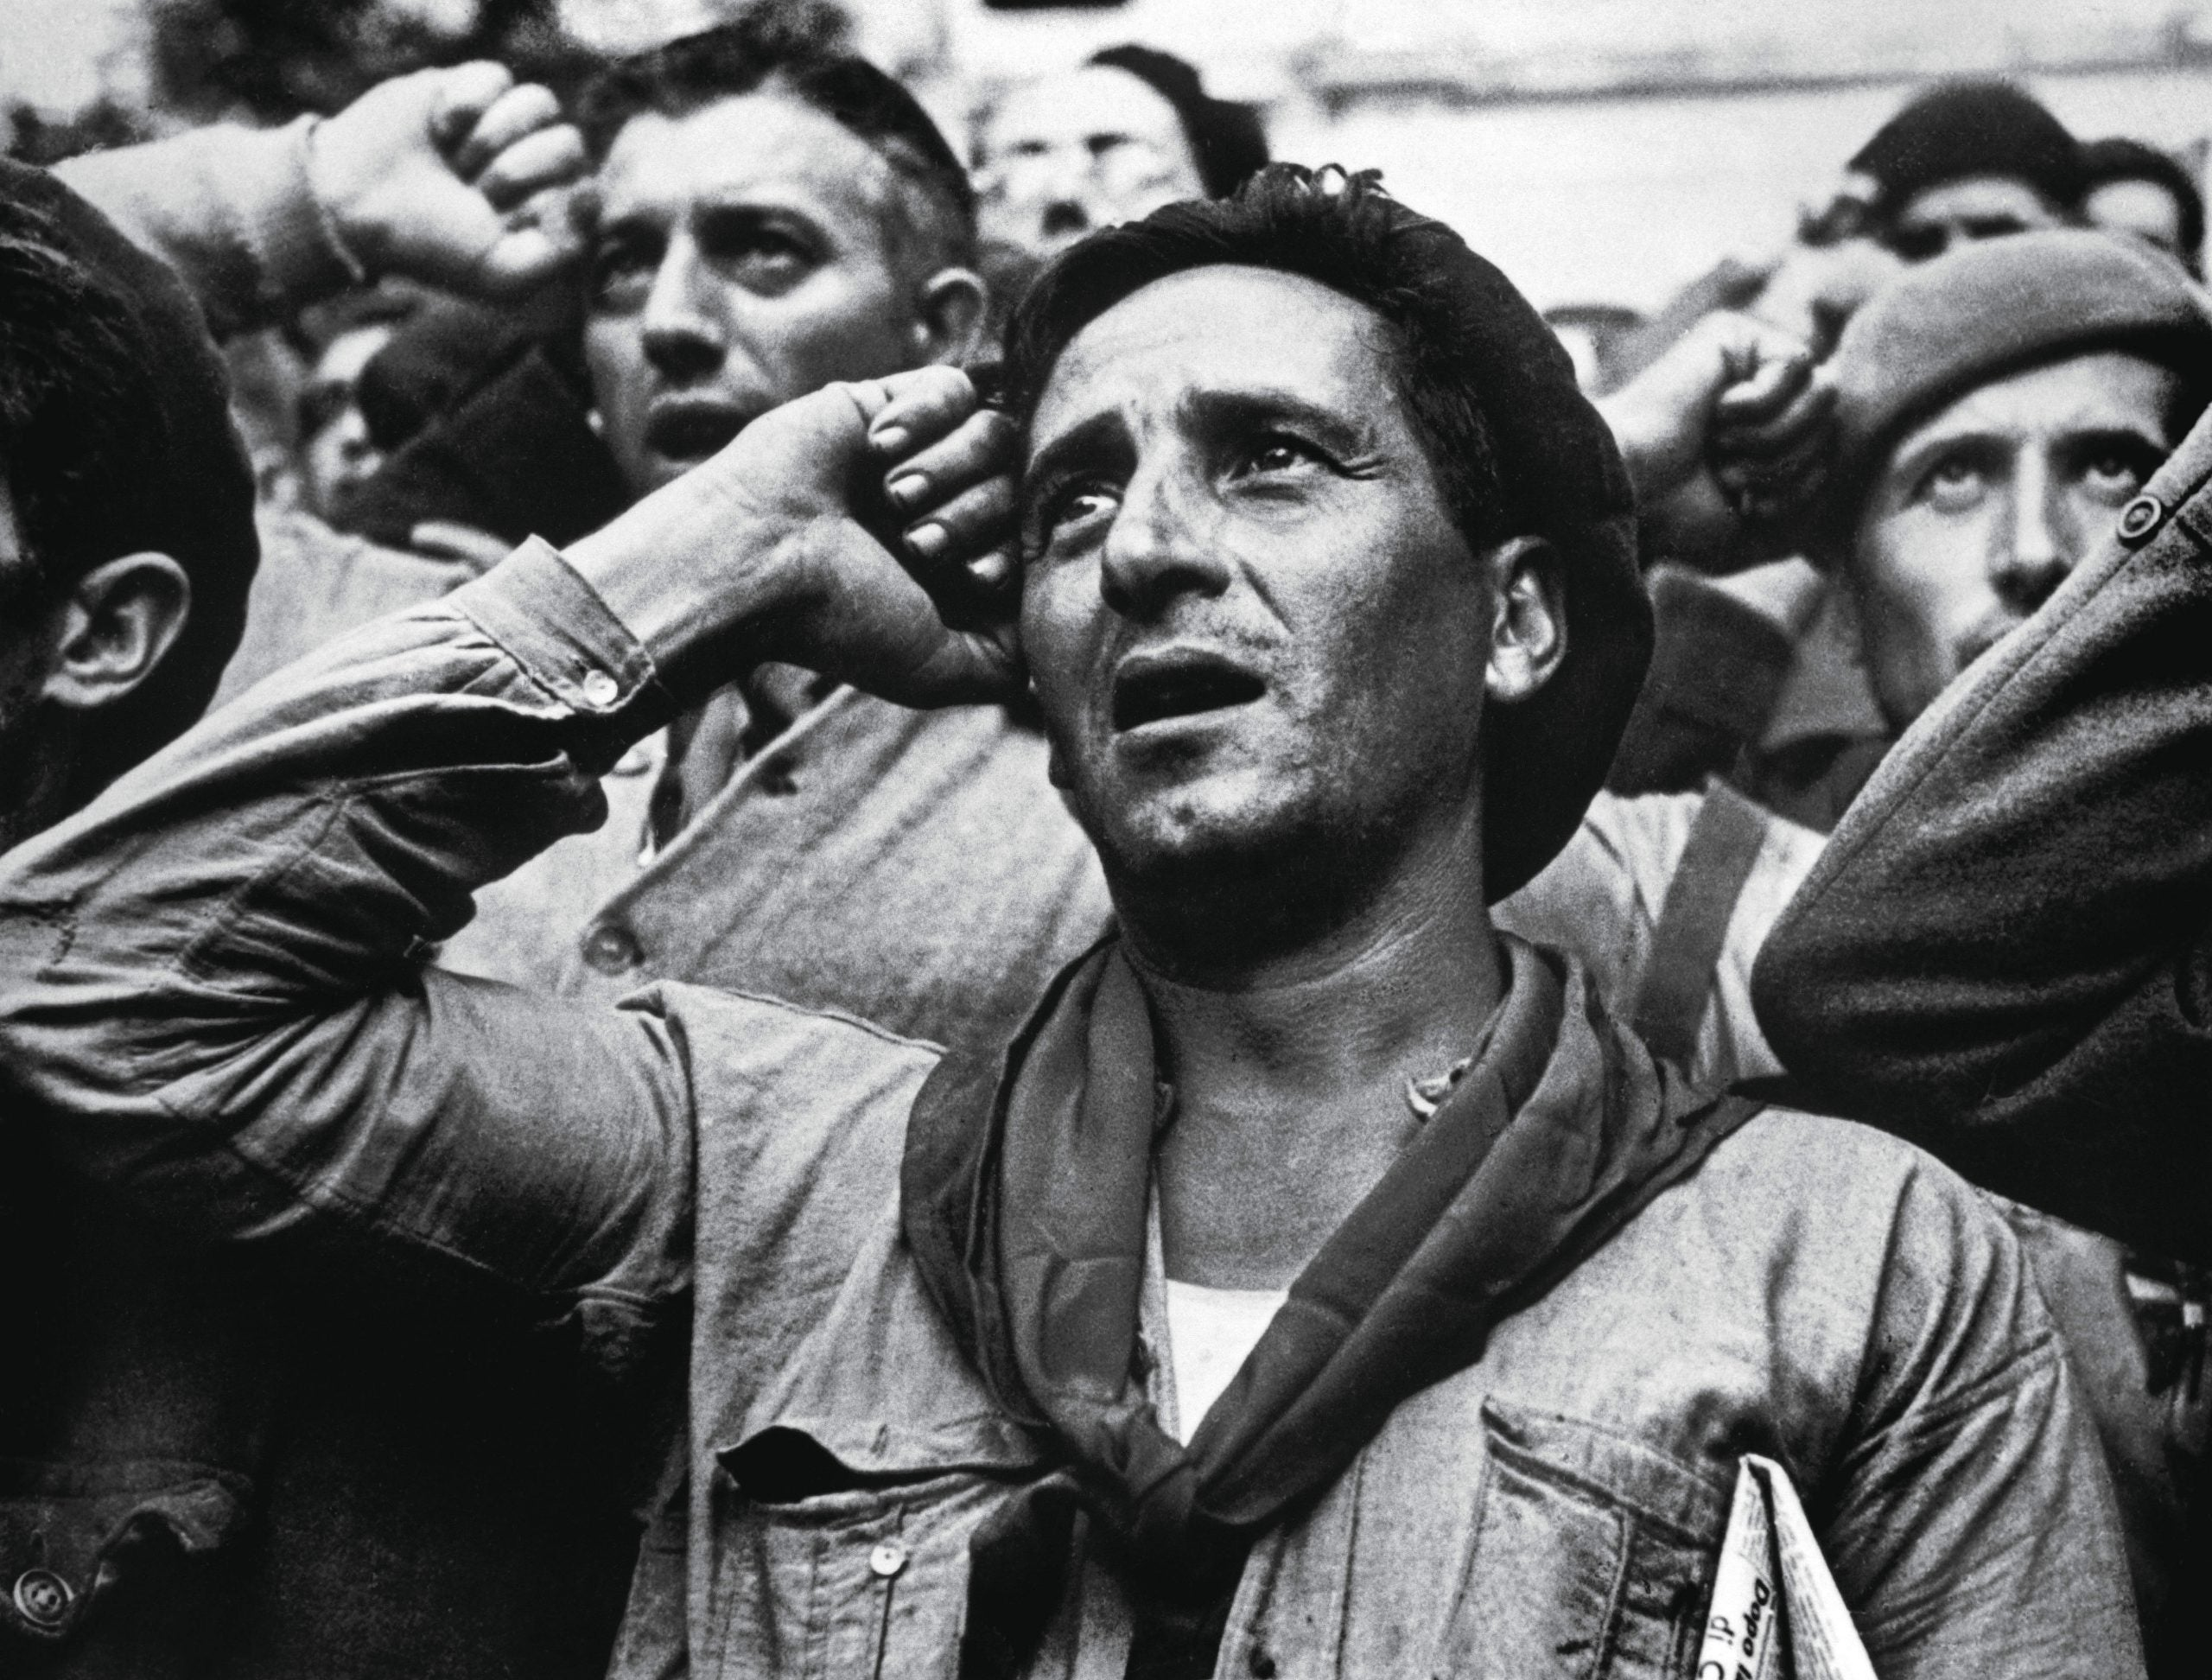 When idealists go to battle: why the Spanish Civil War still matters